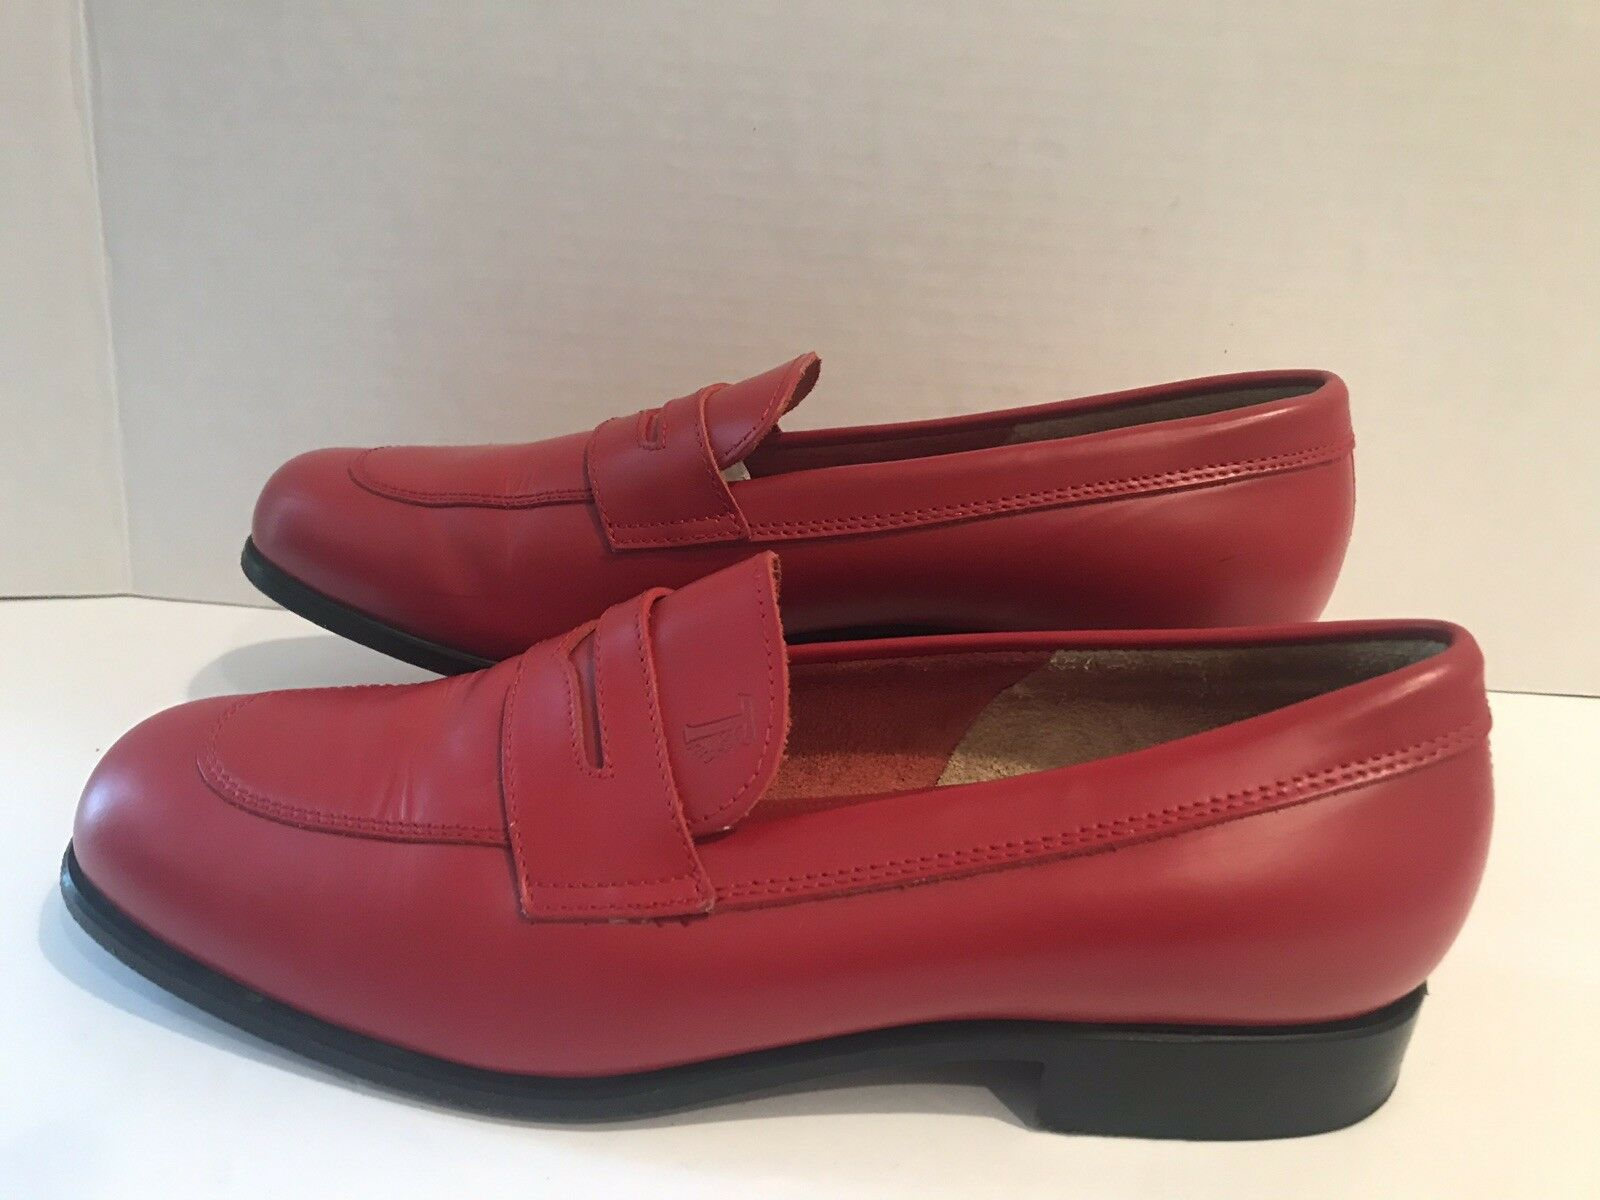 Tods Women's Red Leather Loafers Slip Ons Penny Lane Size 37 EUR 6-6.5 US